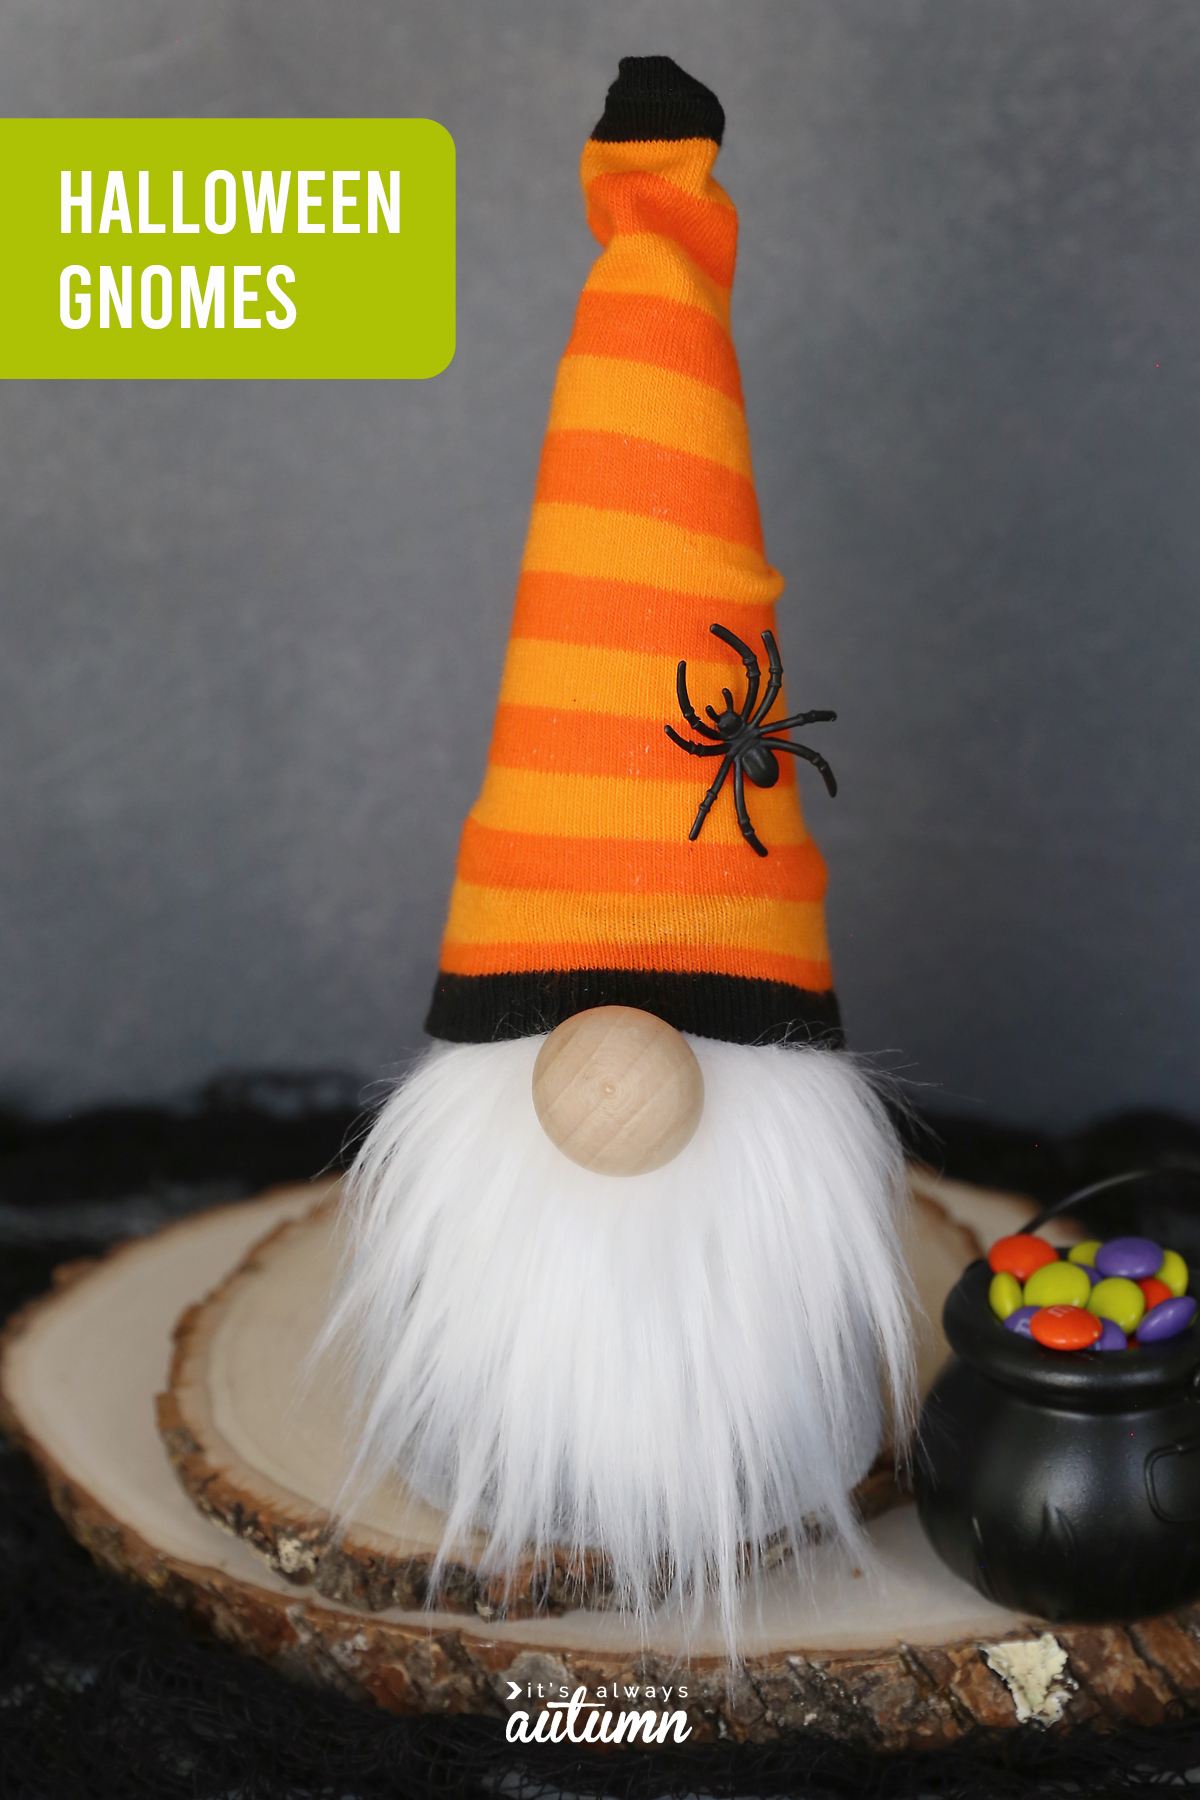 Halloween gnome with an orange striped hat and spider